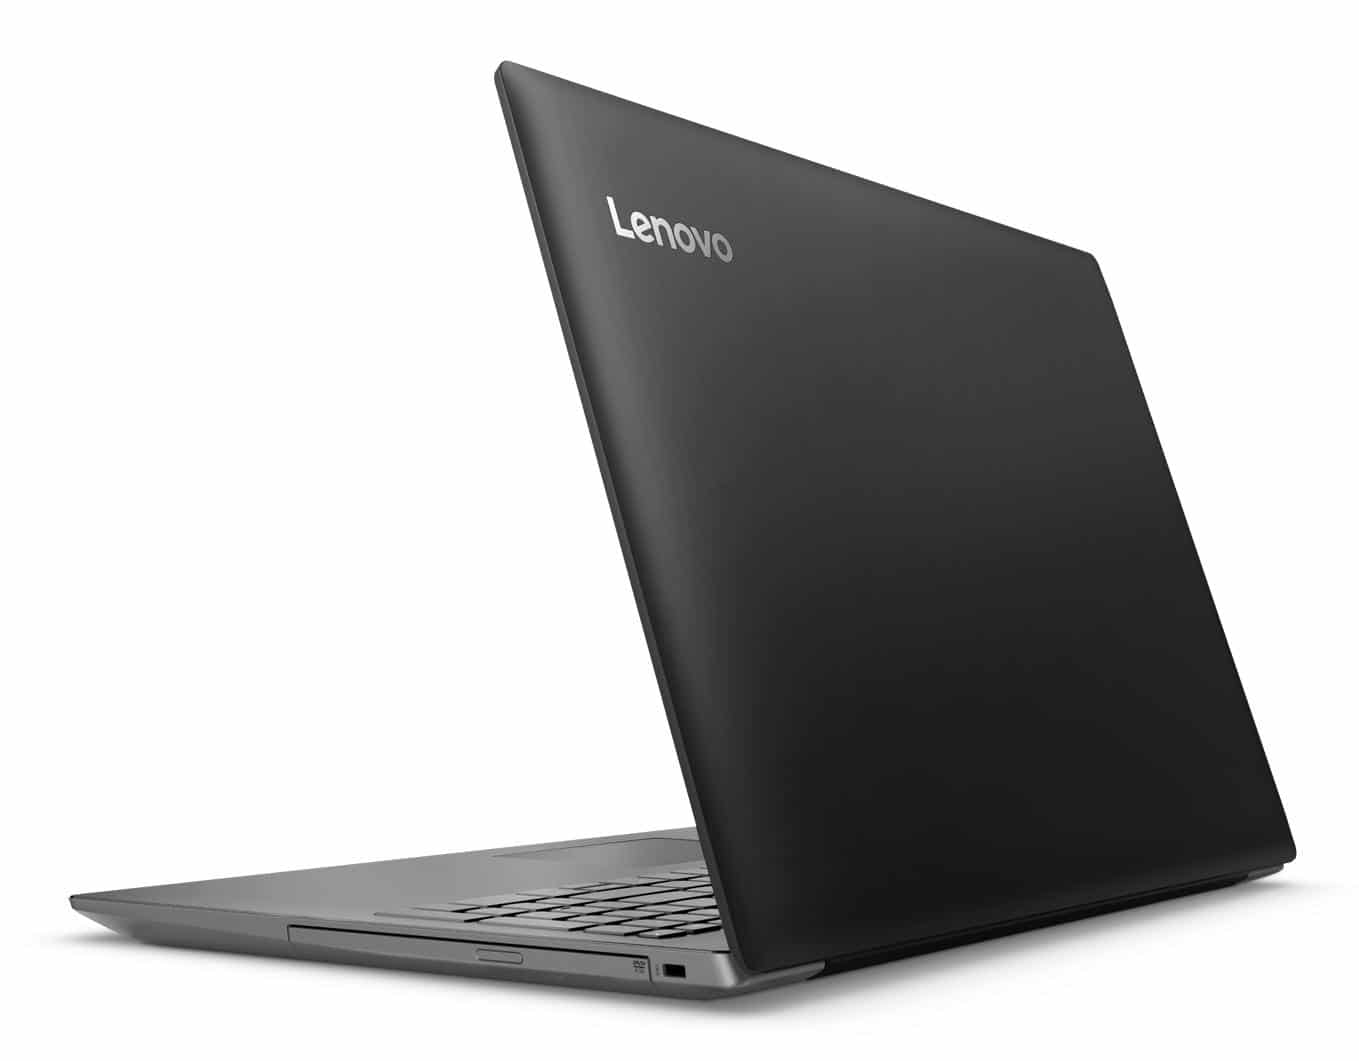 Lenovo IdeaPad 320-15IAP, PC portable 15 pouces Apollo Lake Rad 530 à 449€